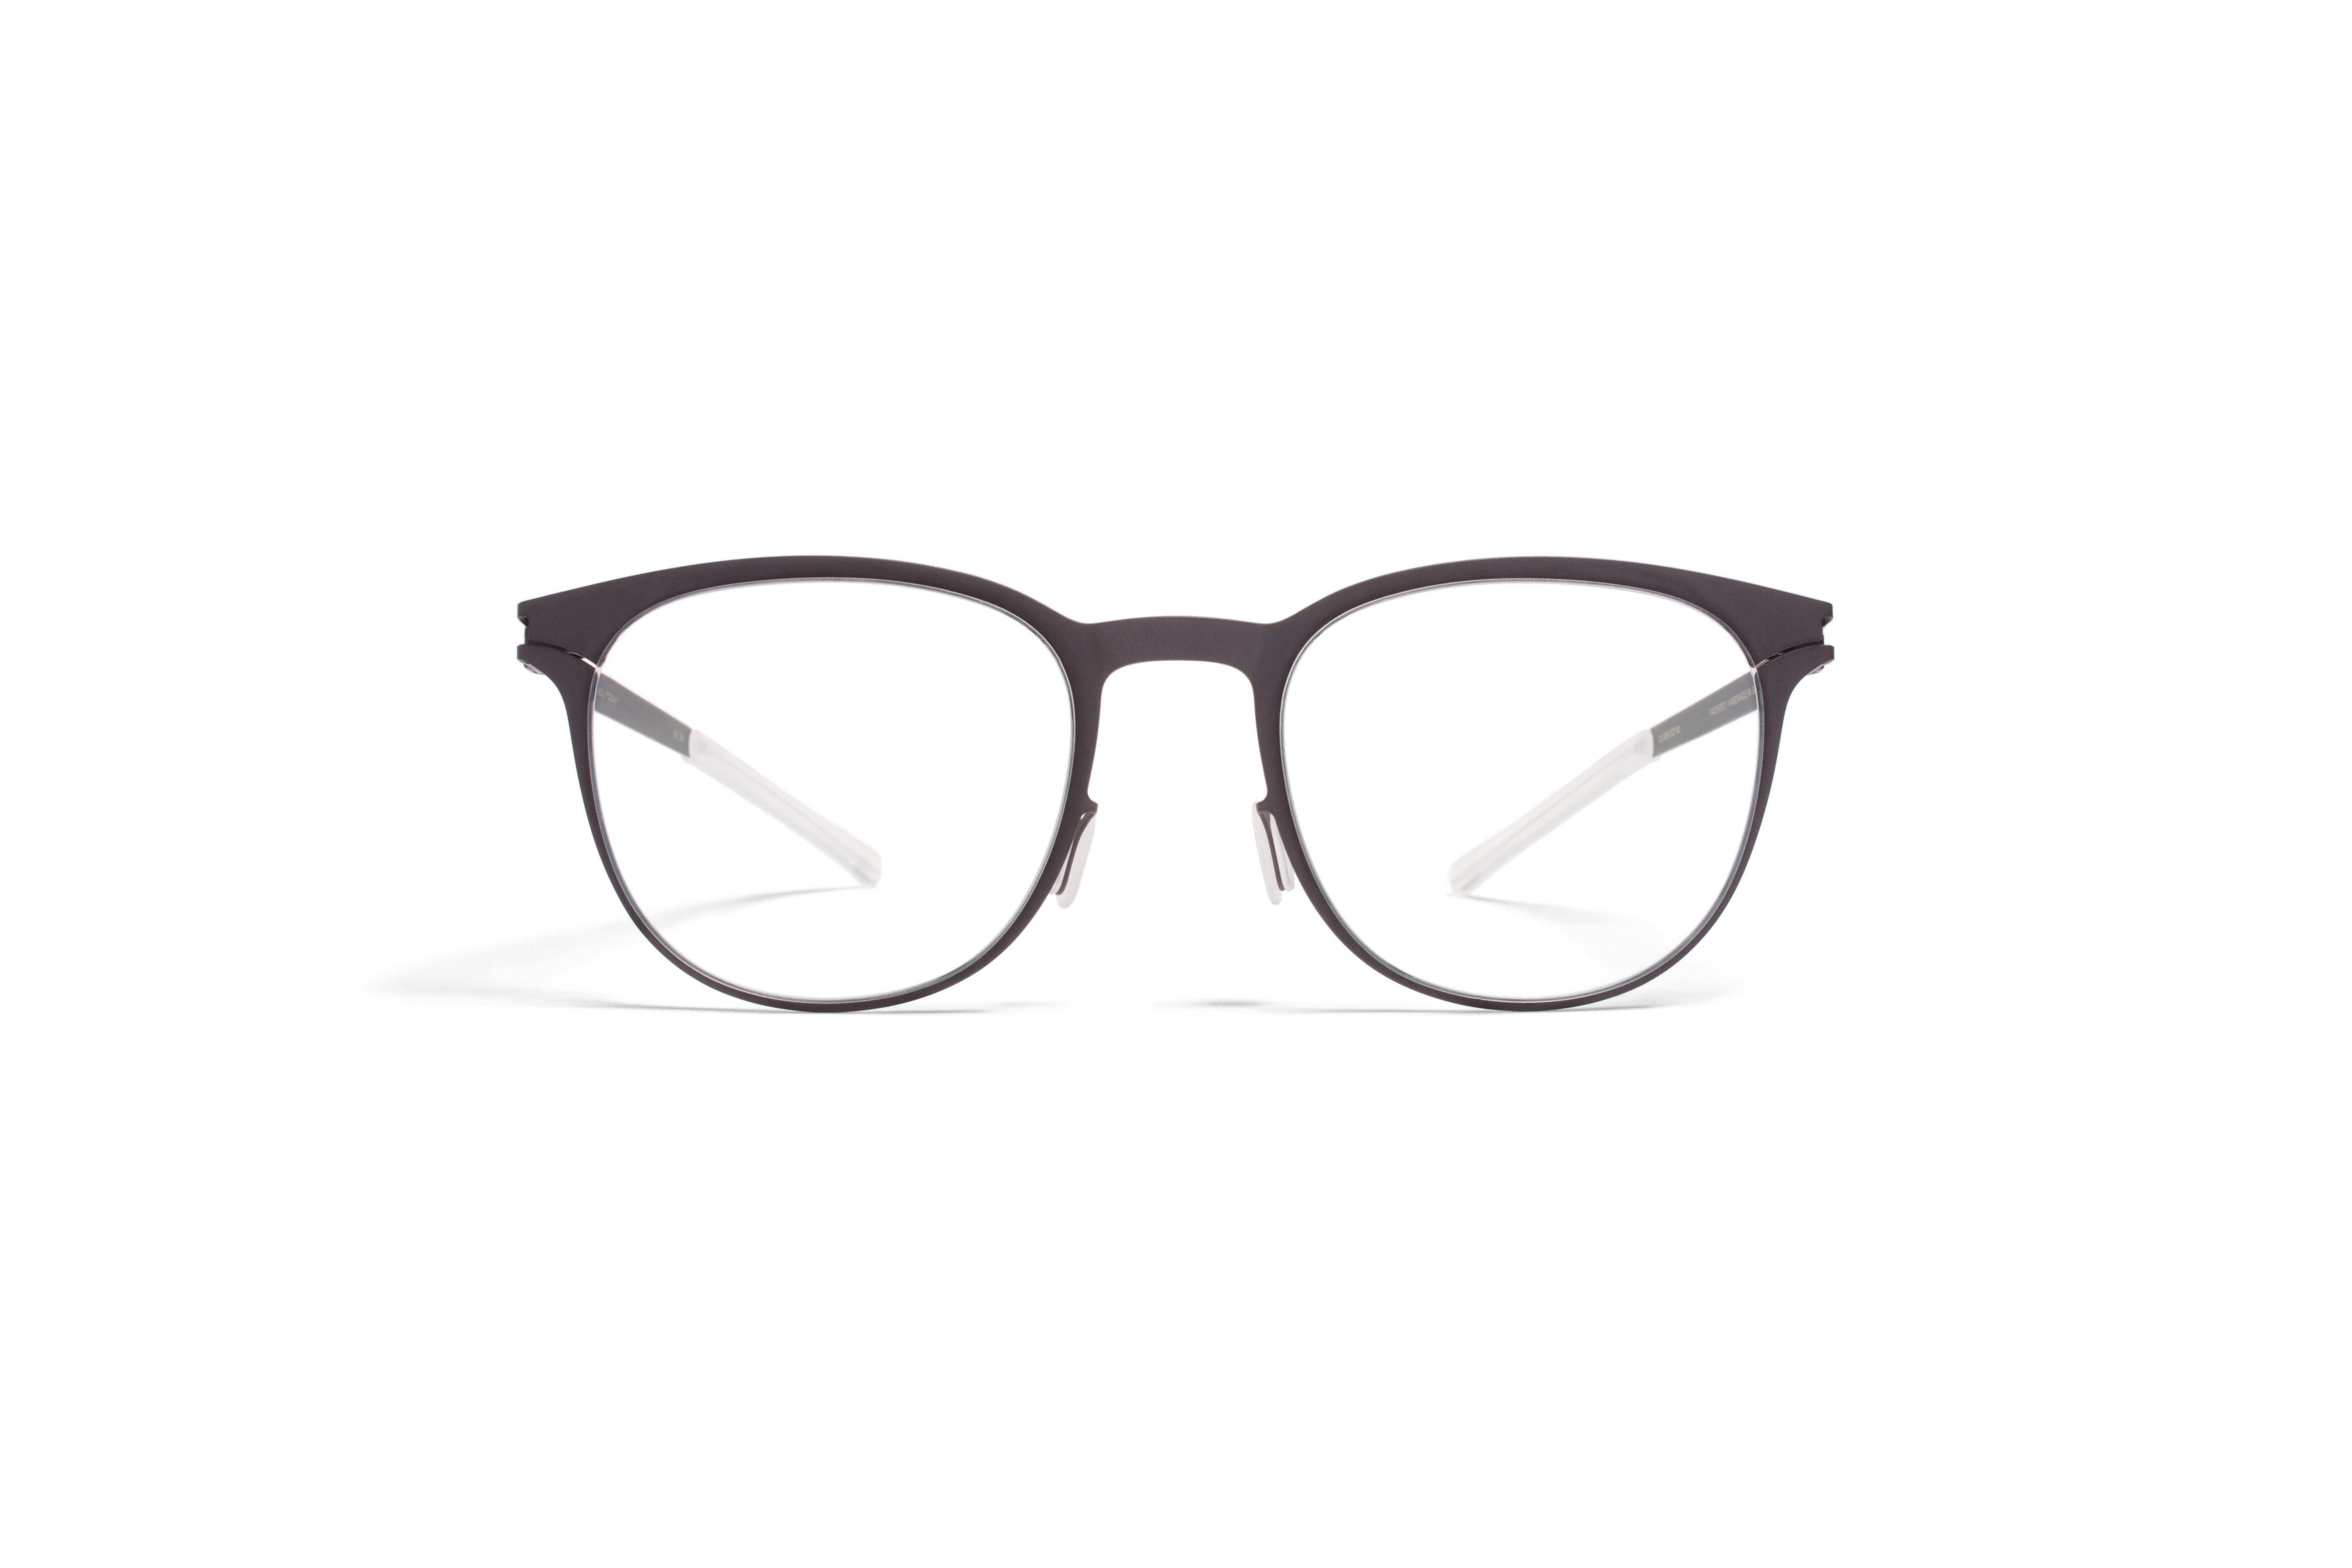 MYKITA No1 Rx Dean Blackberry Clear